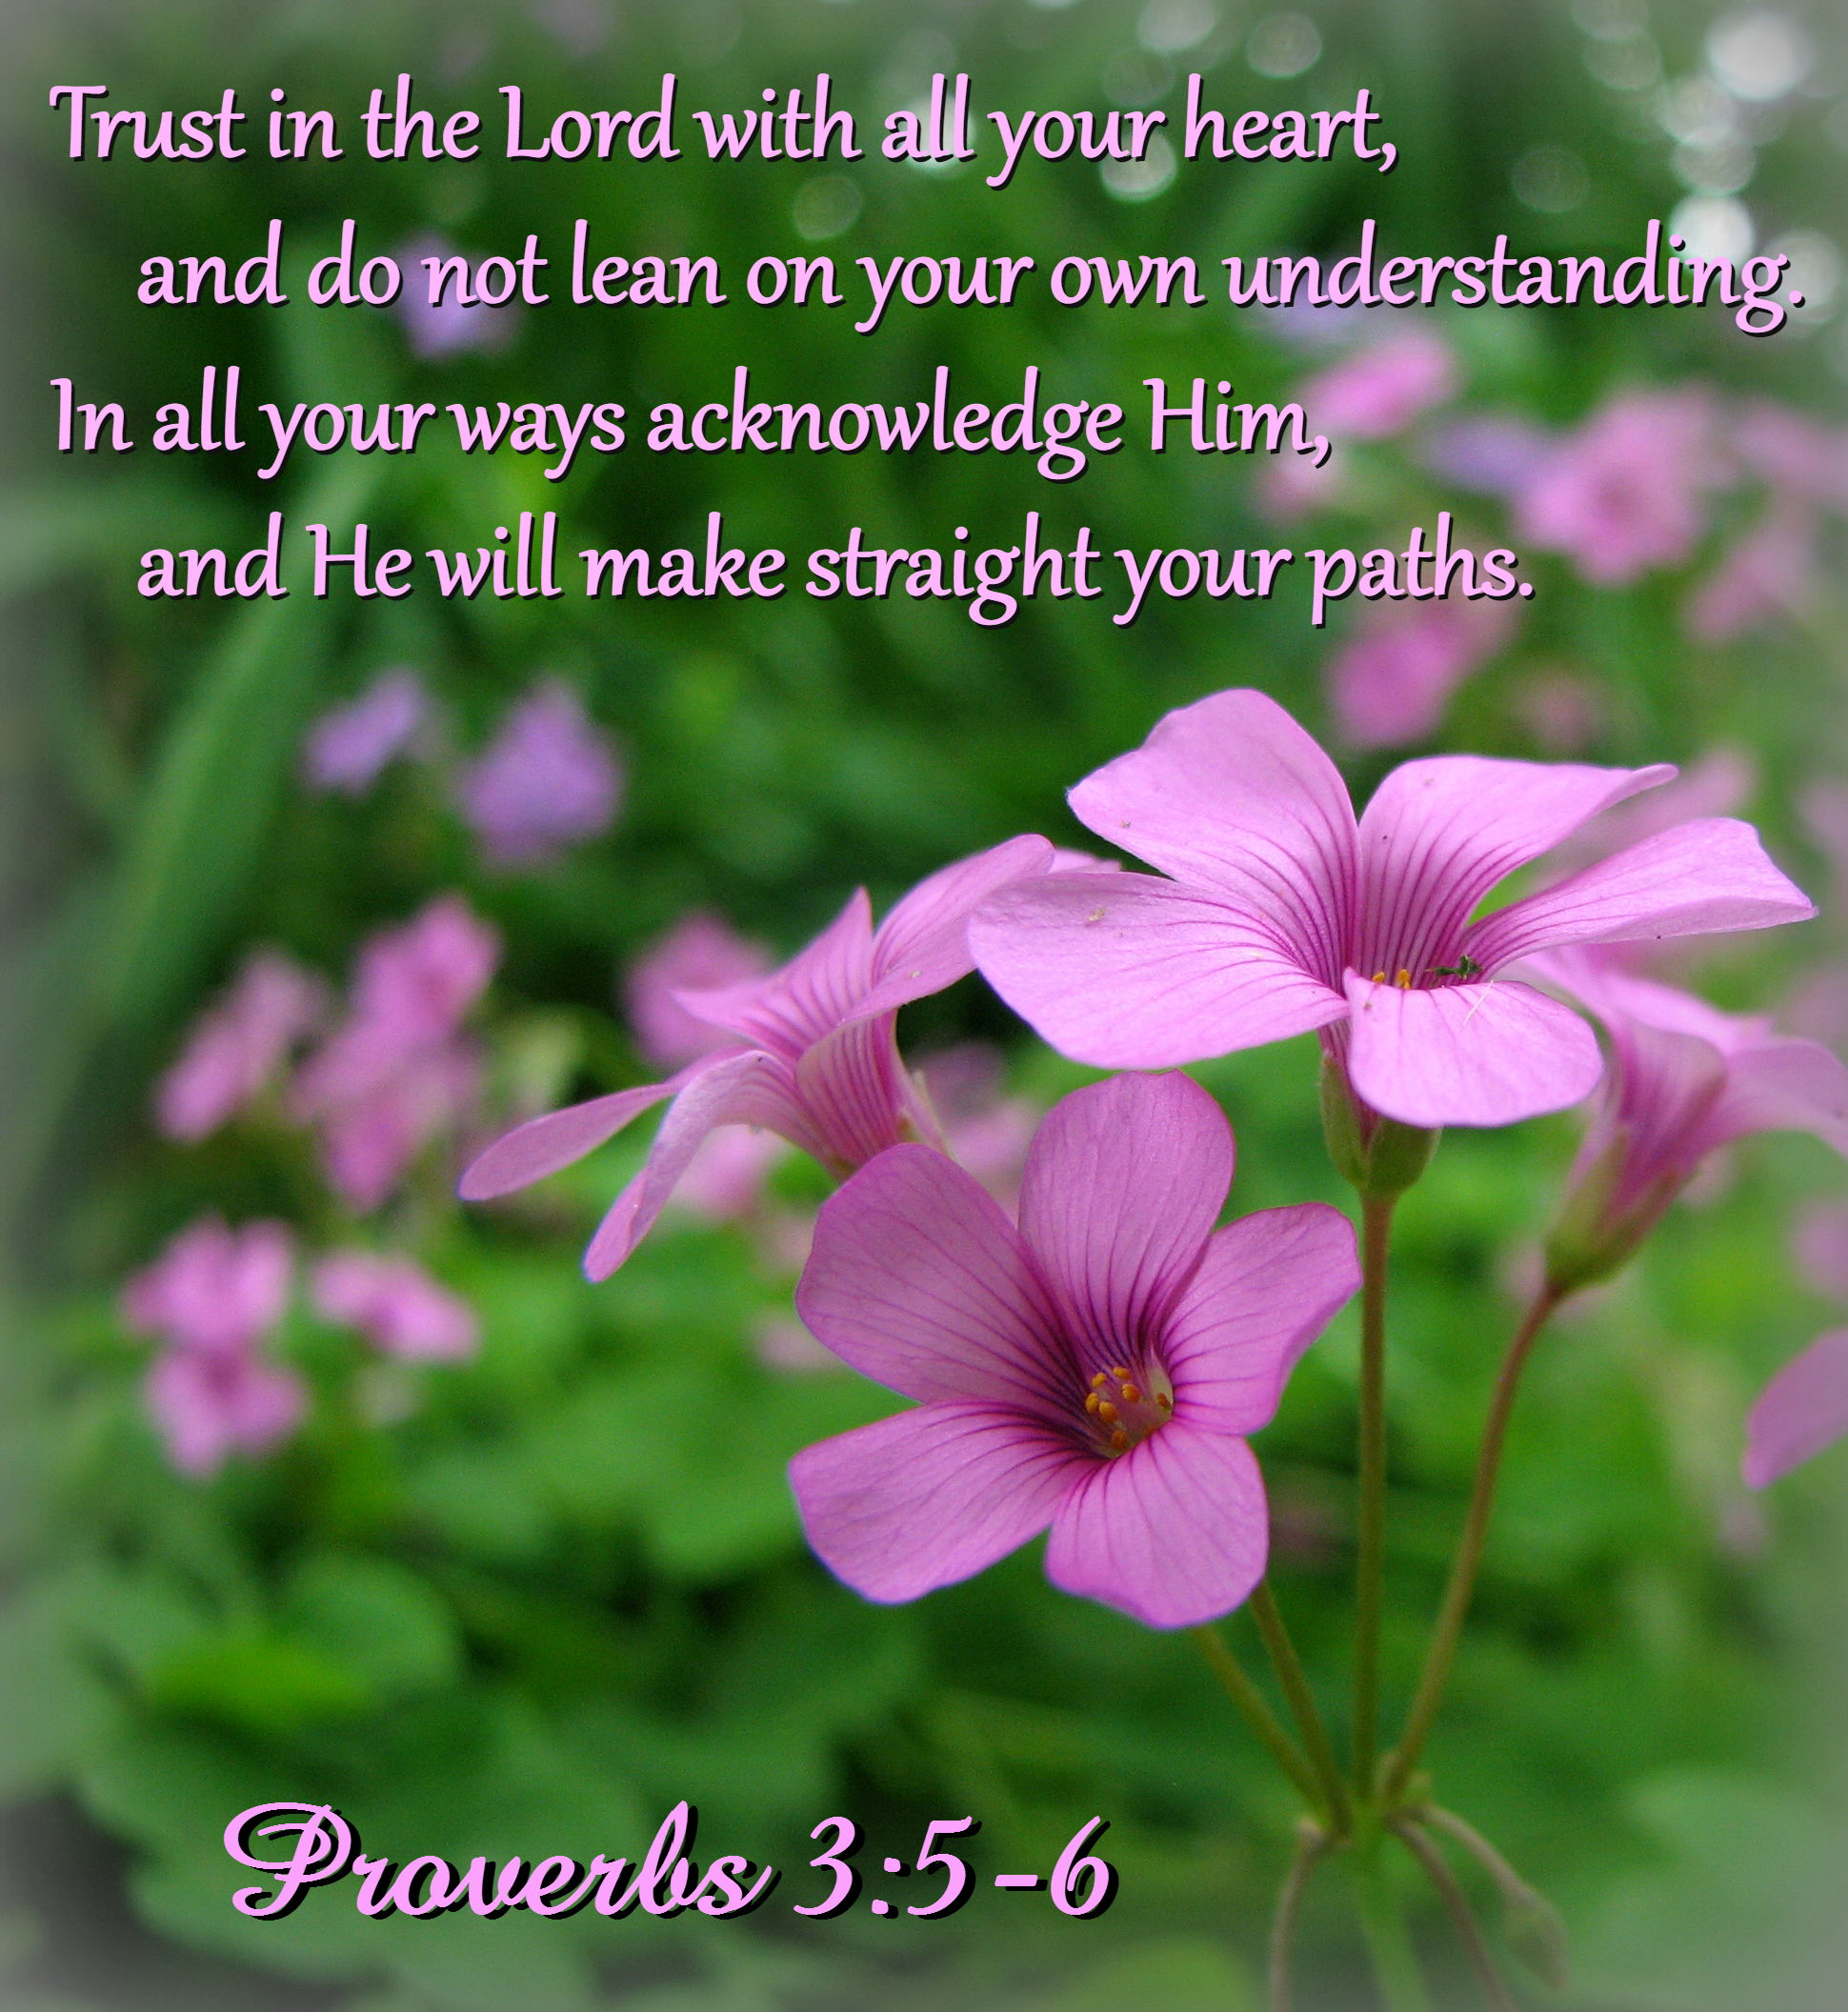 """Trust in the Lord with all your heart, and do not lean on your own understanding.  In all your ways acknowledge Him, and He will make straight your paths.""  Proverbs 3:5-6"